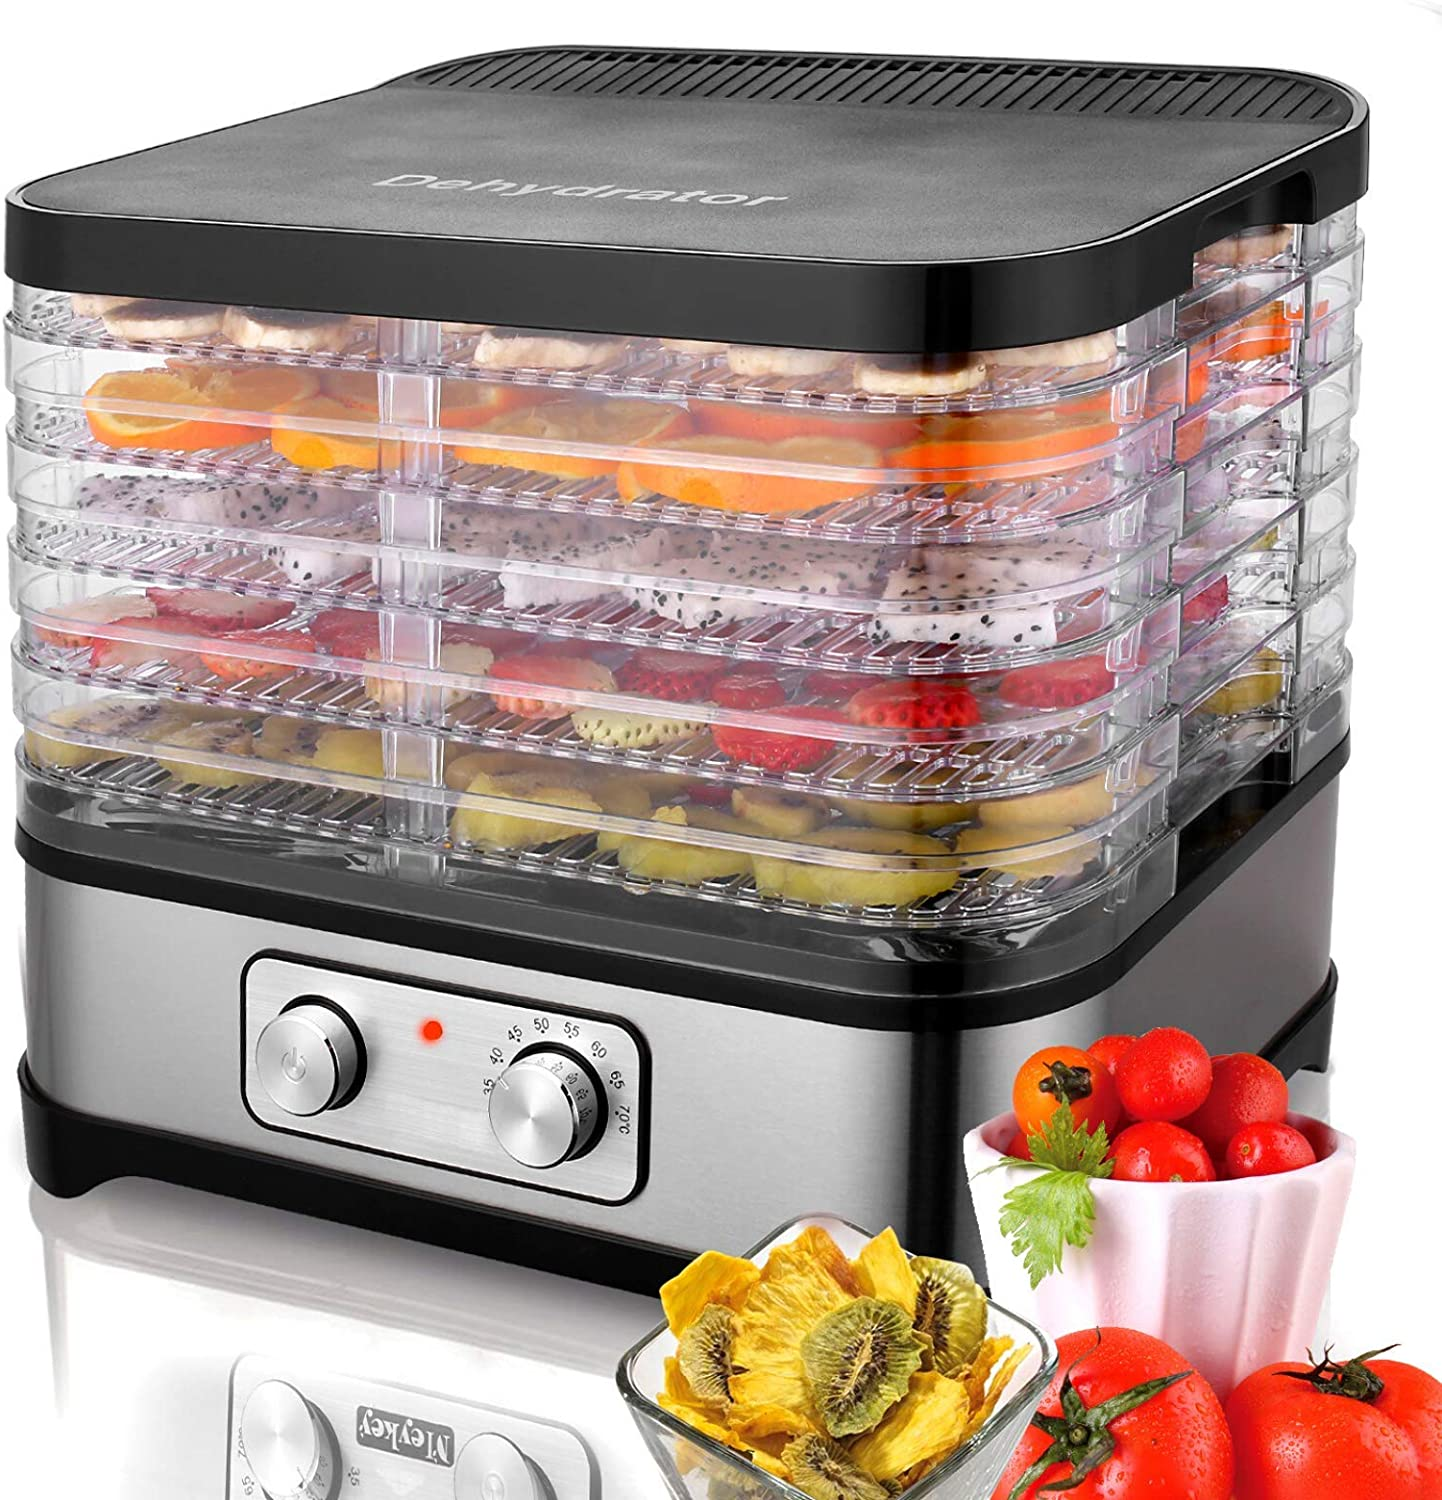 7/5-Tray Electric Food Dehydrator Machine For Jerky Meat Fruit Vegetable Beef Plant,Automatic Shut Off Temperature Control Professional Multi-Tier Kitchen Food Appliances,Commercial Dehydrator Machine (5 - Tray)